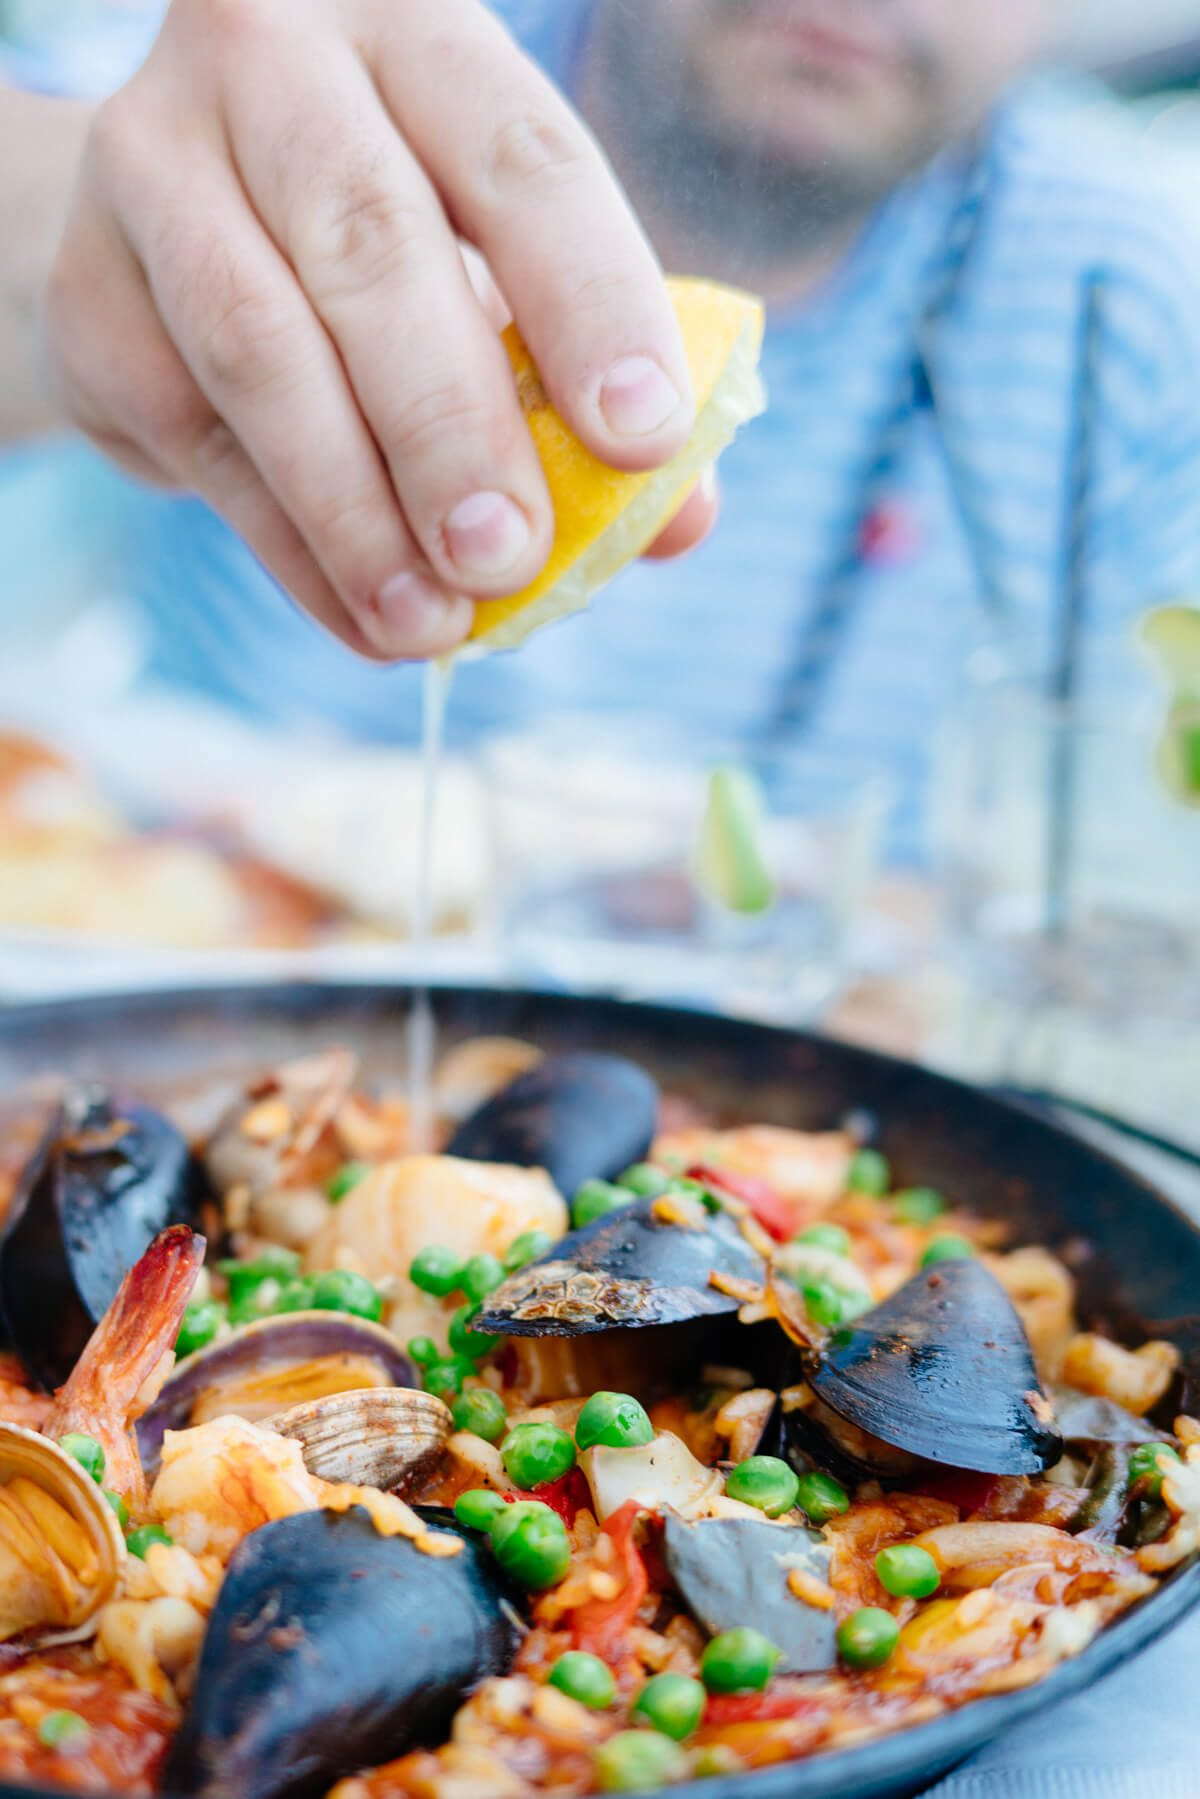 Clayton from The Taste SF Squeezing Lemon on Paella at Sam's Chowder House in Half Moon Bay